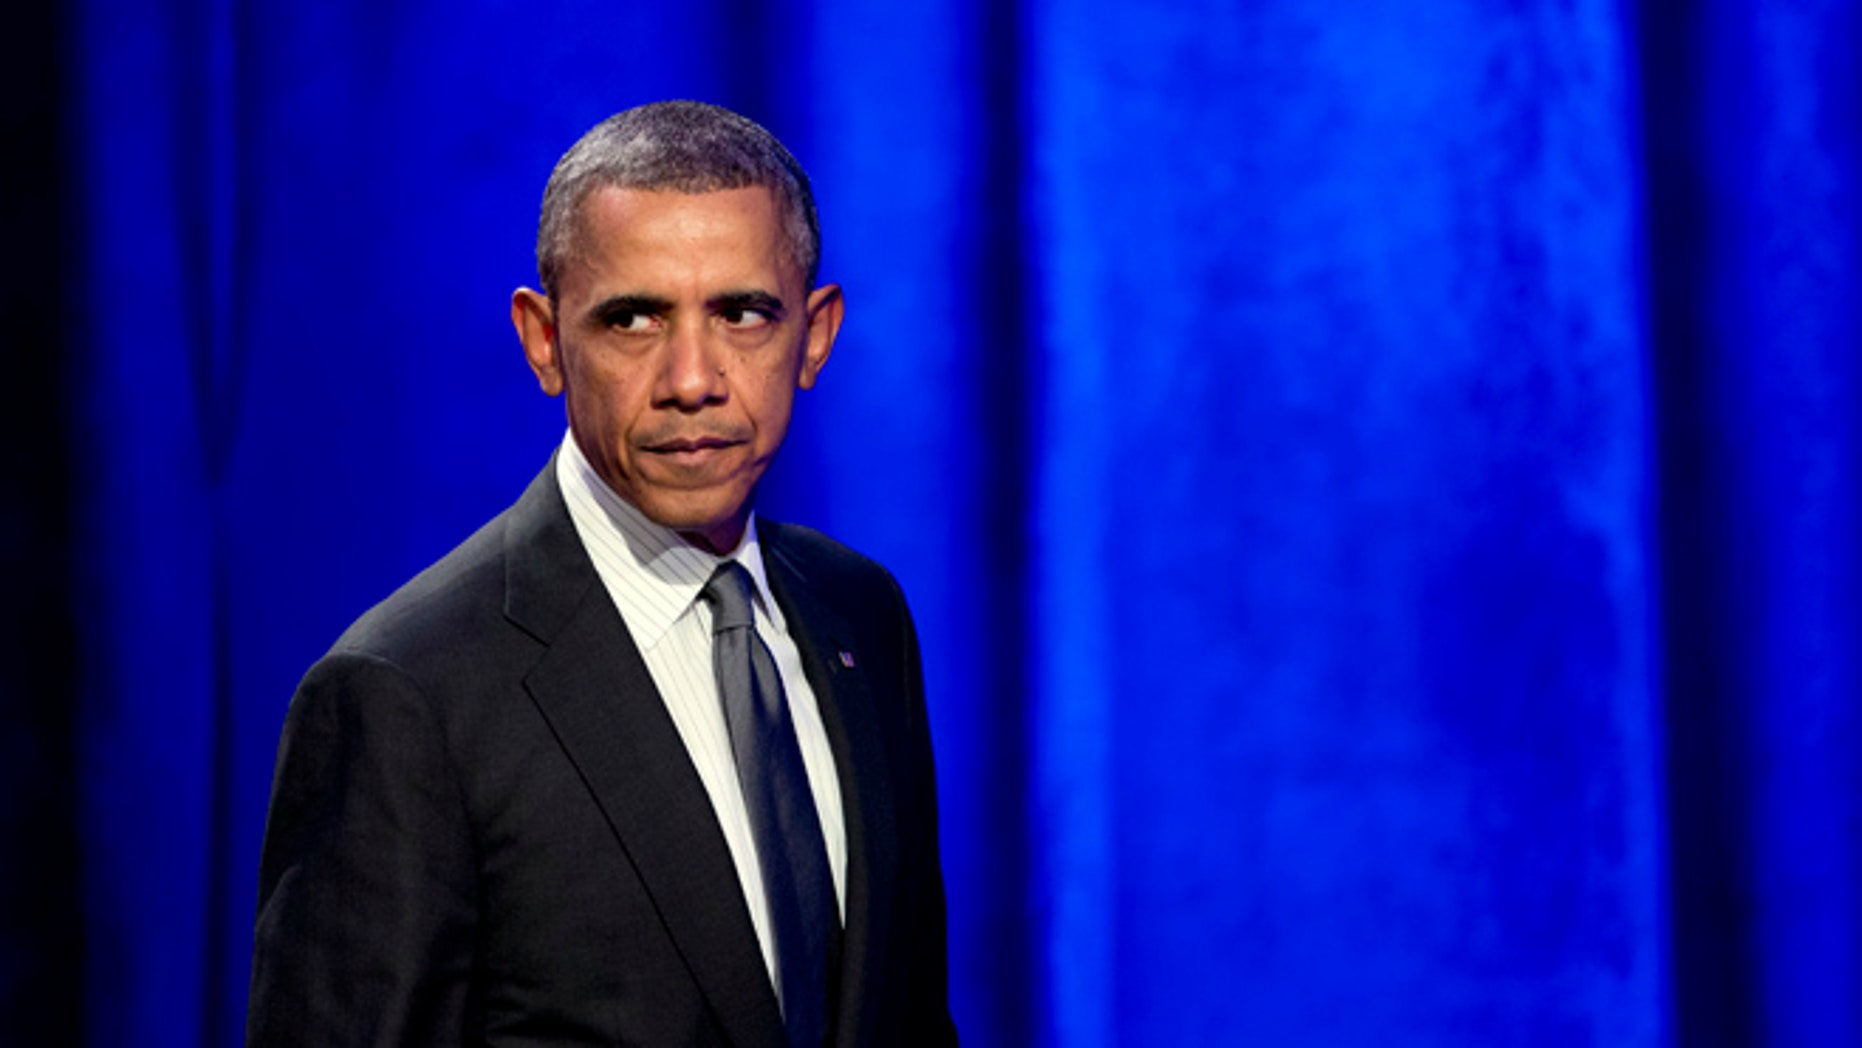 Feb. 25, 2014: President Obama glances at the crowd as walks off the stage after speaking at the National Organizing Summit in Washington.